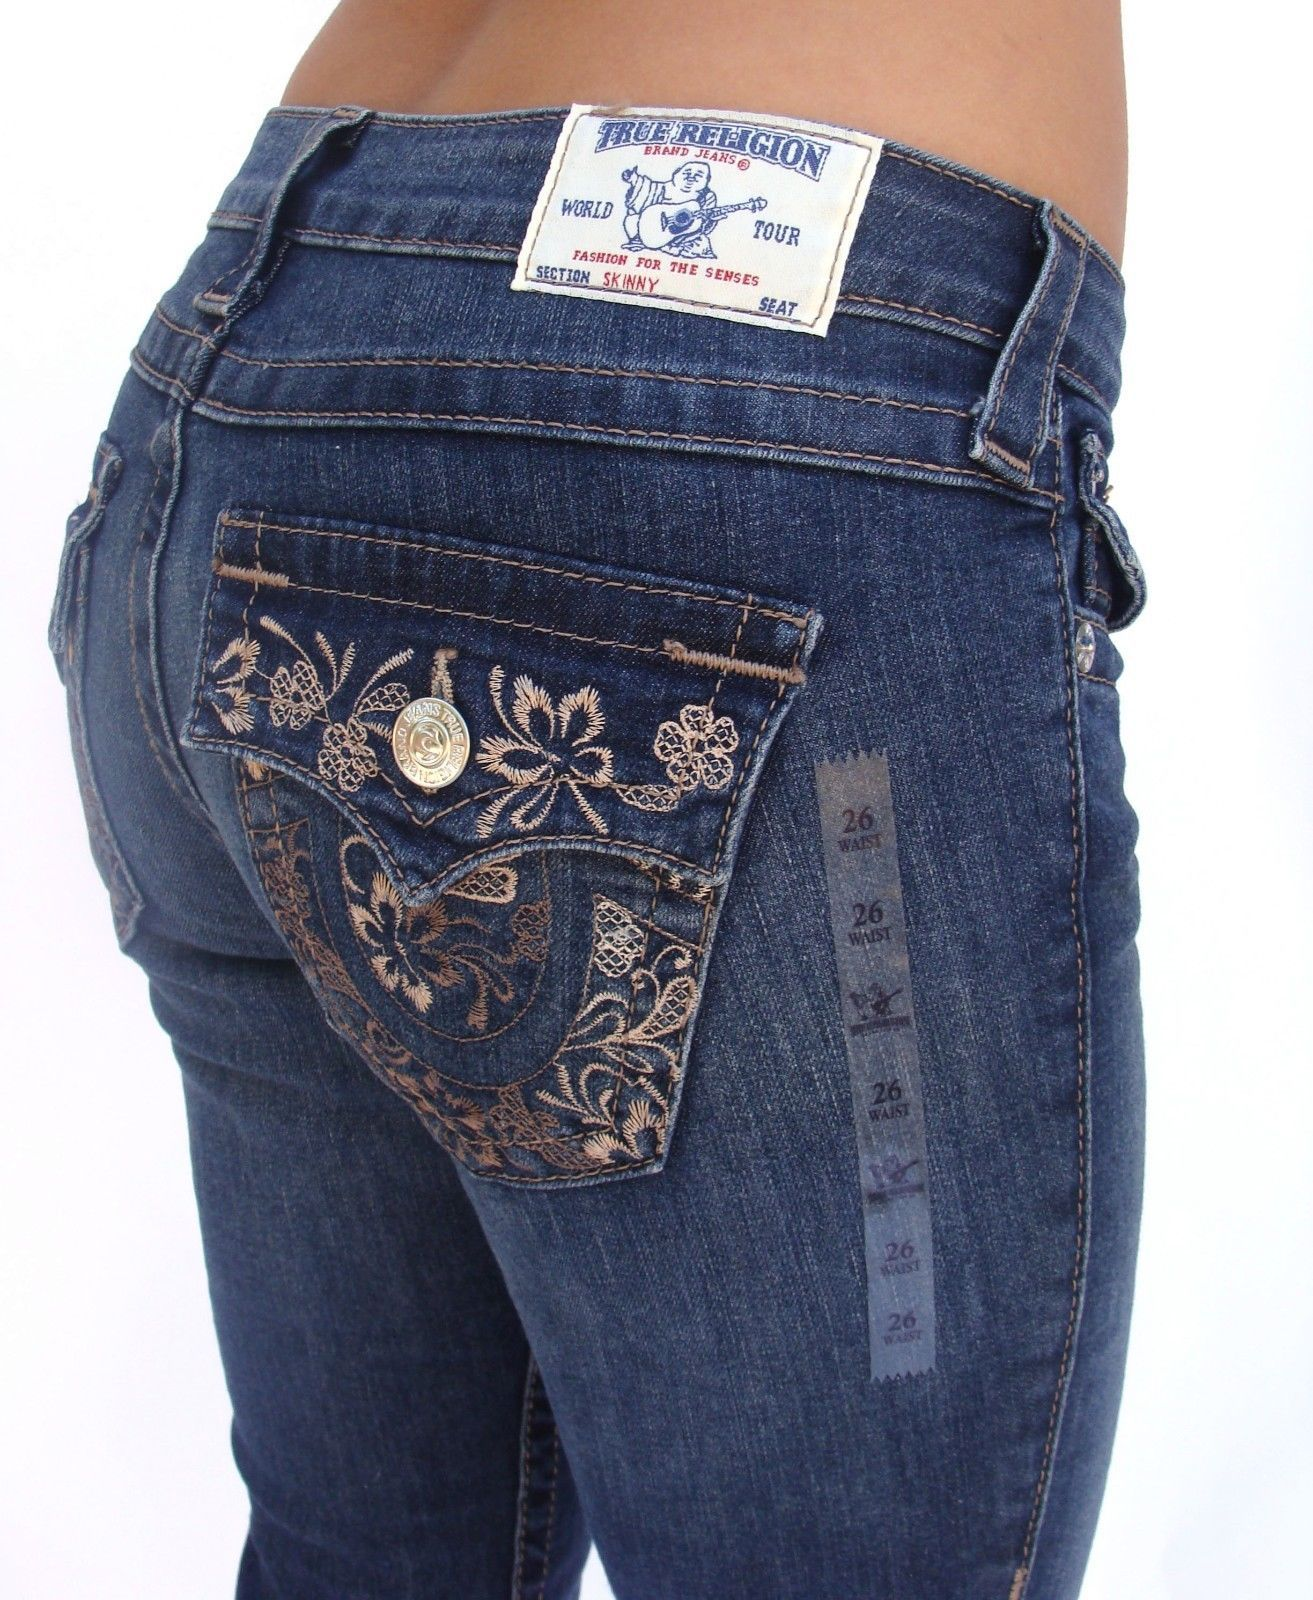 a914632c5  True  Religion  TrueReligion  Unique  Skinny  WFLPS  Brown  Flower   Buttermilk  Sky  Womens  Jeans  clothing  style  blackfriday  christmas   deals  sales ...